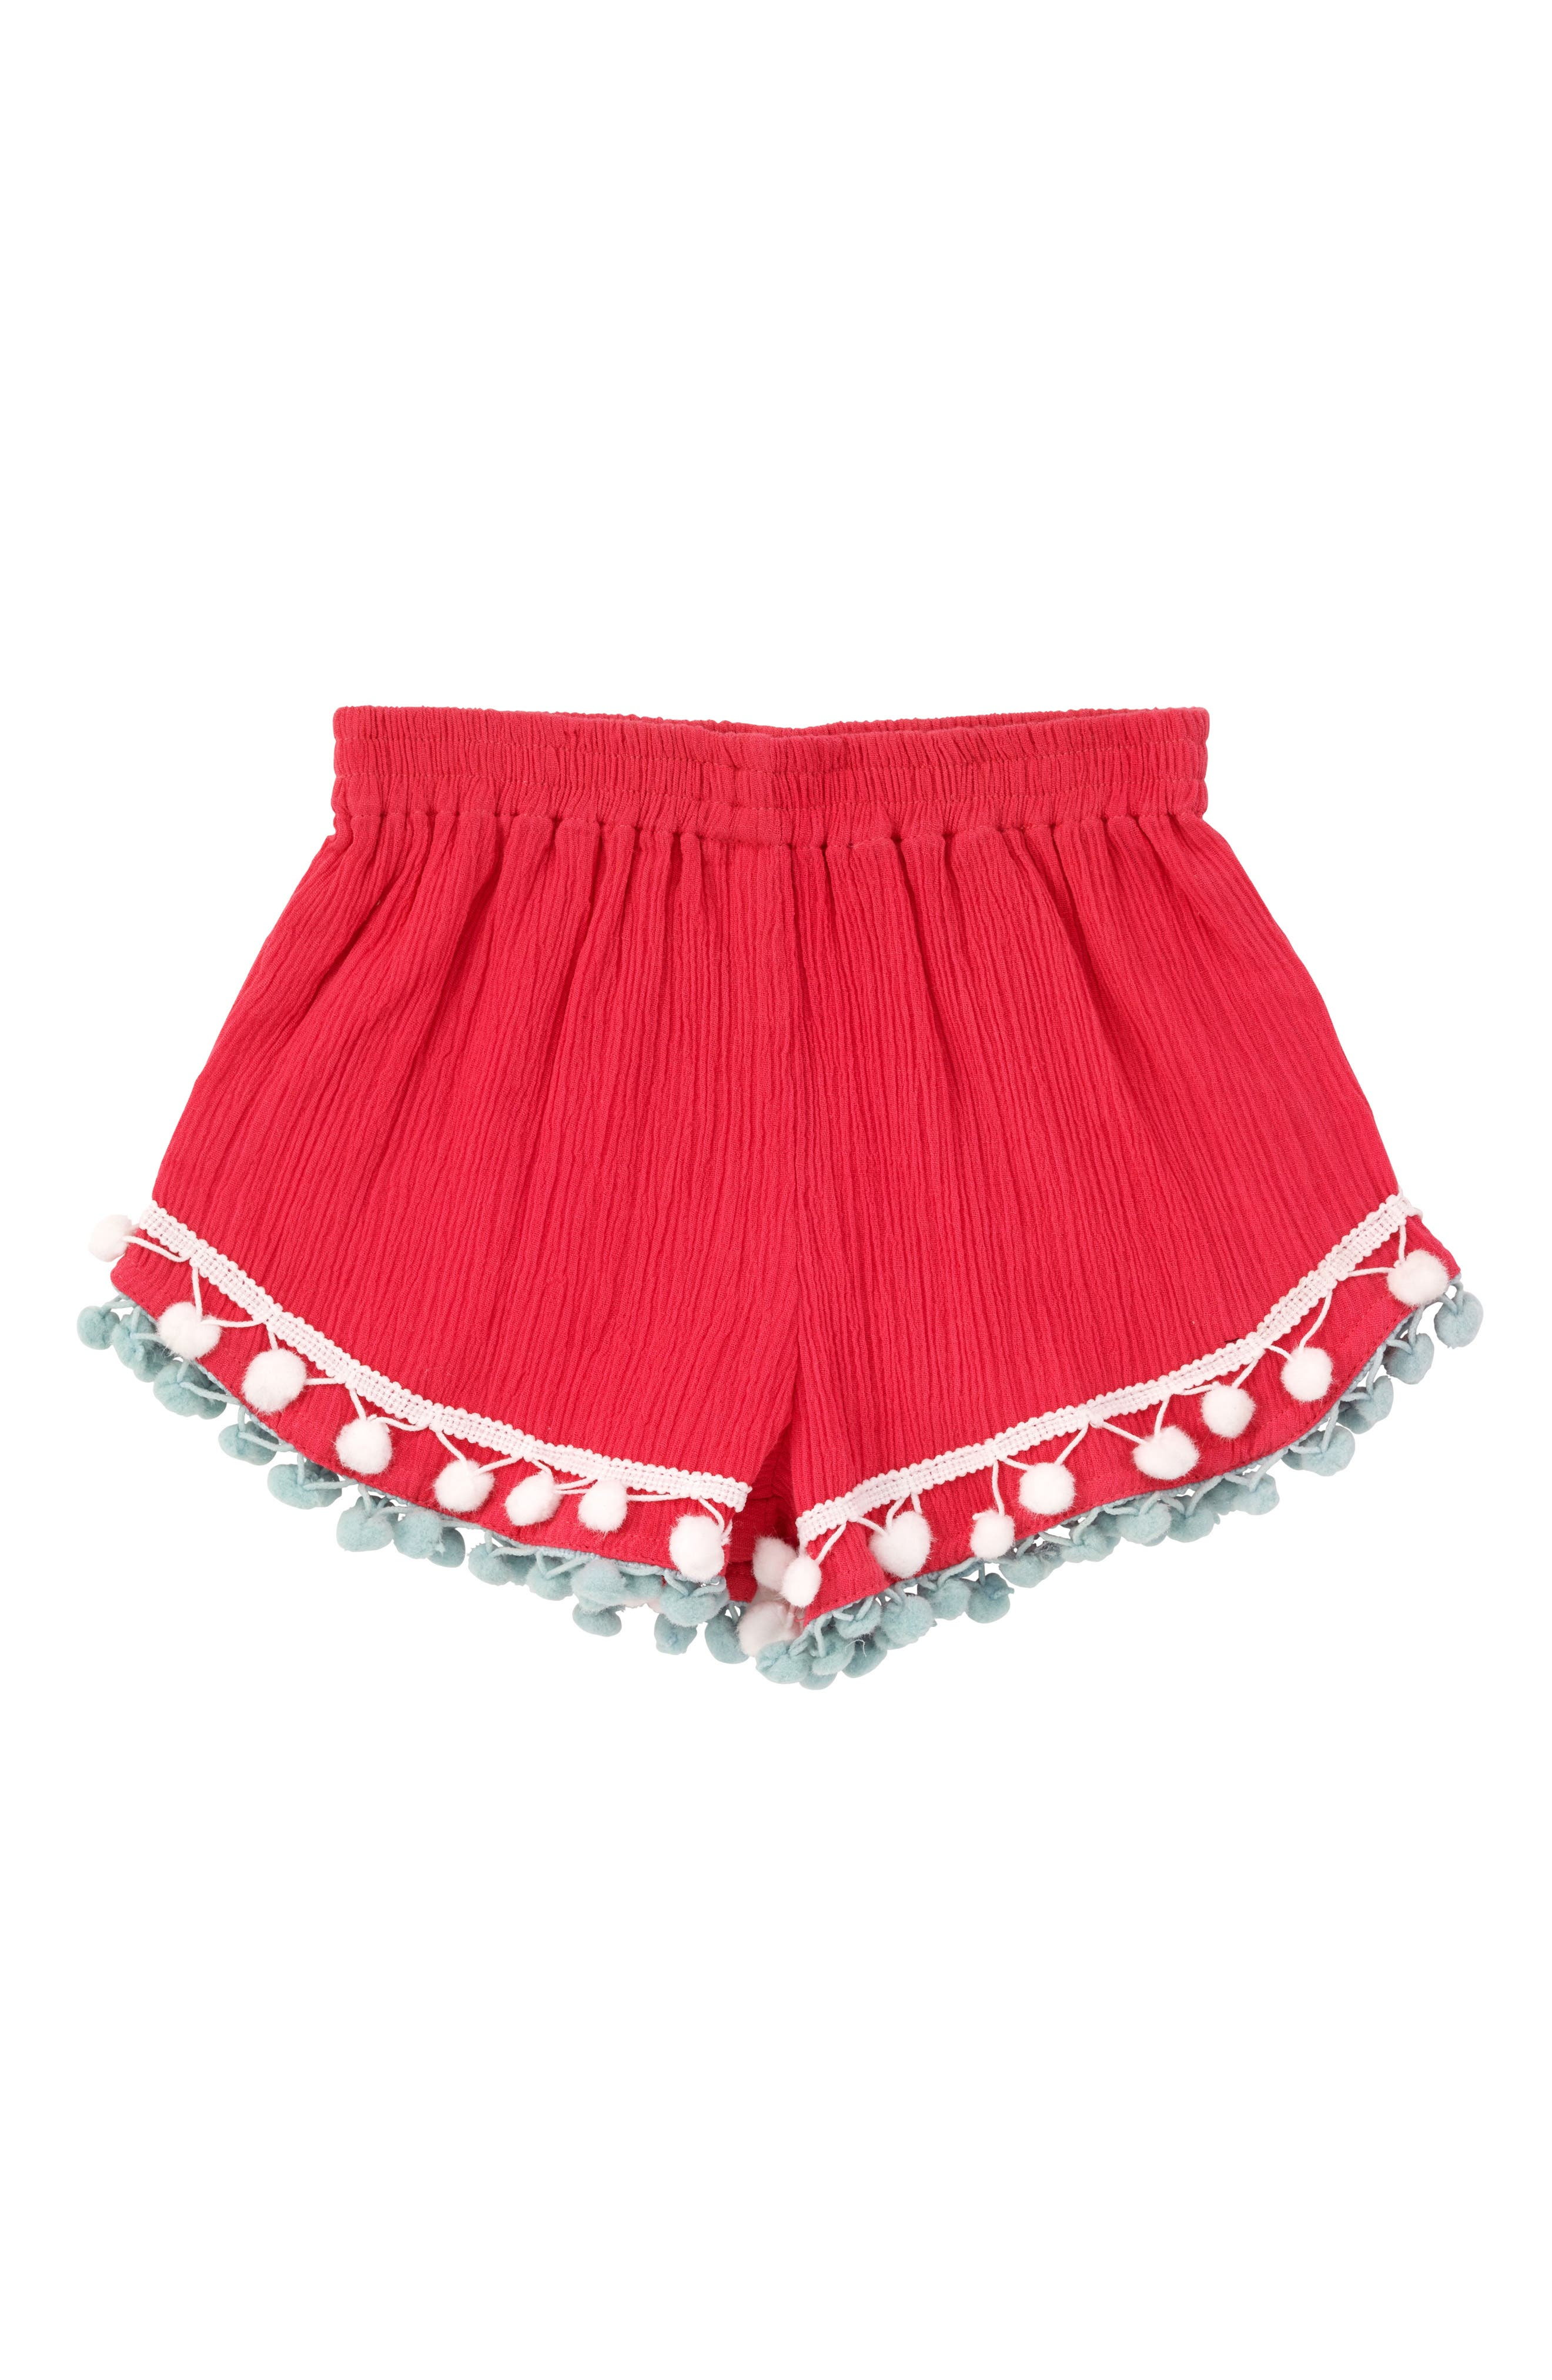 Main Image - Masalababy Pompom Shorts (Toddler Girls, Little Girls & Big Girls)